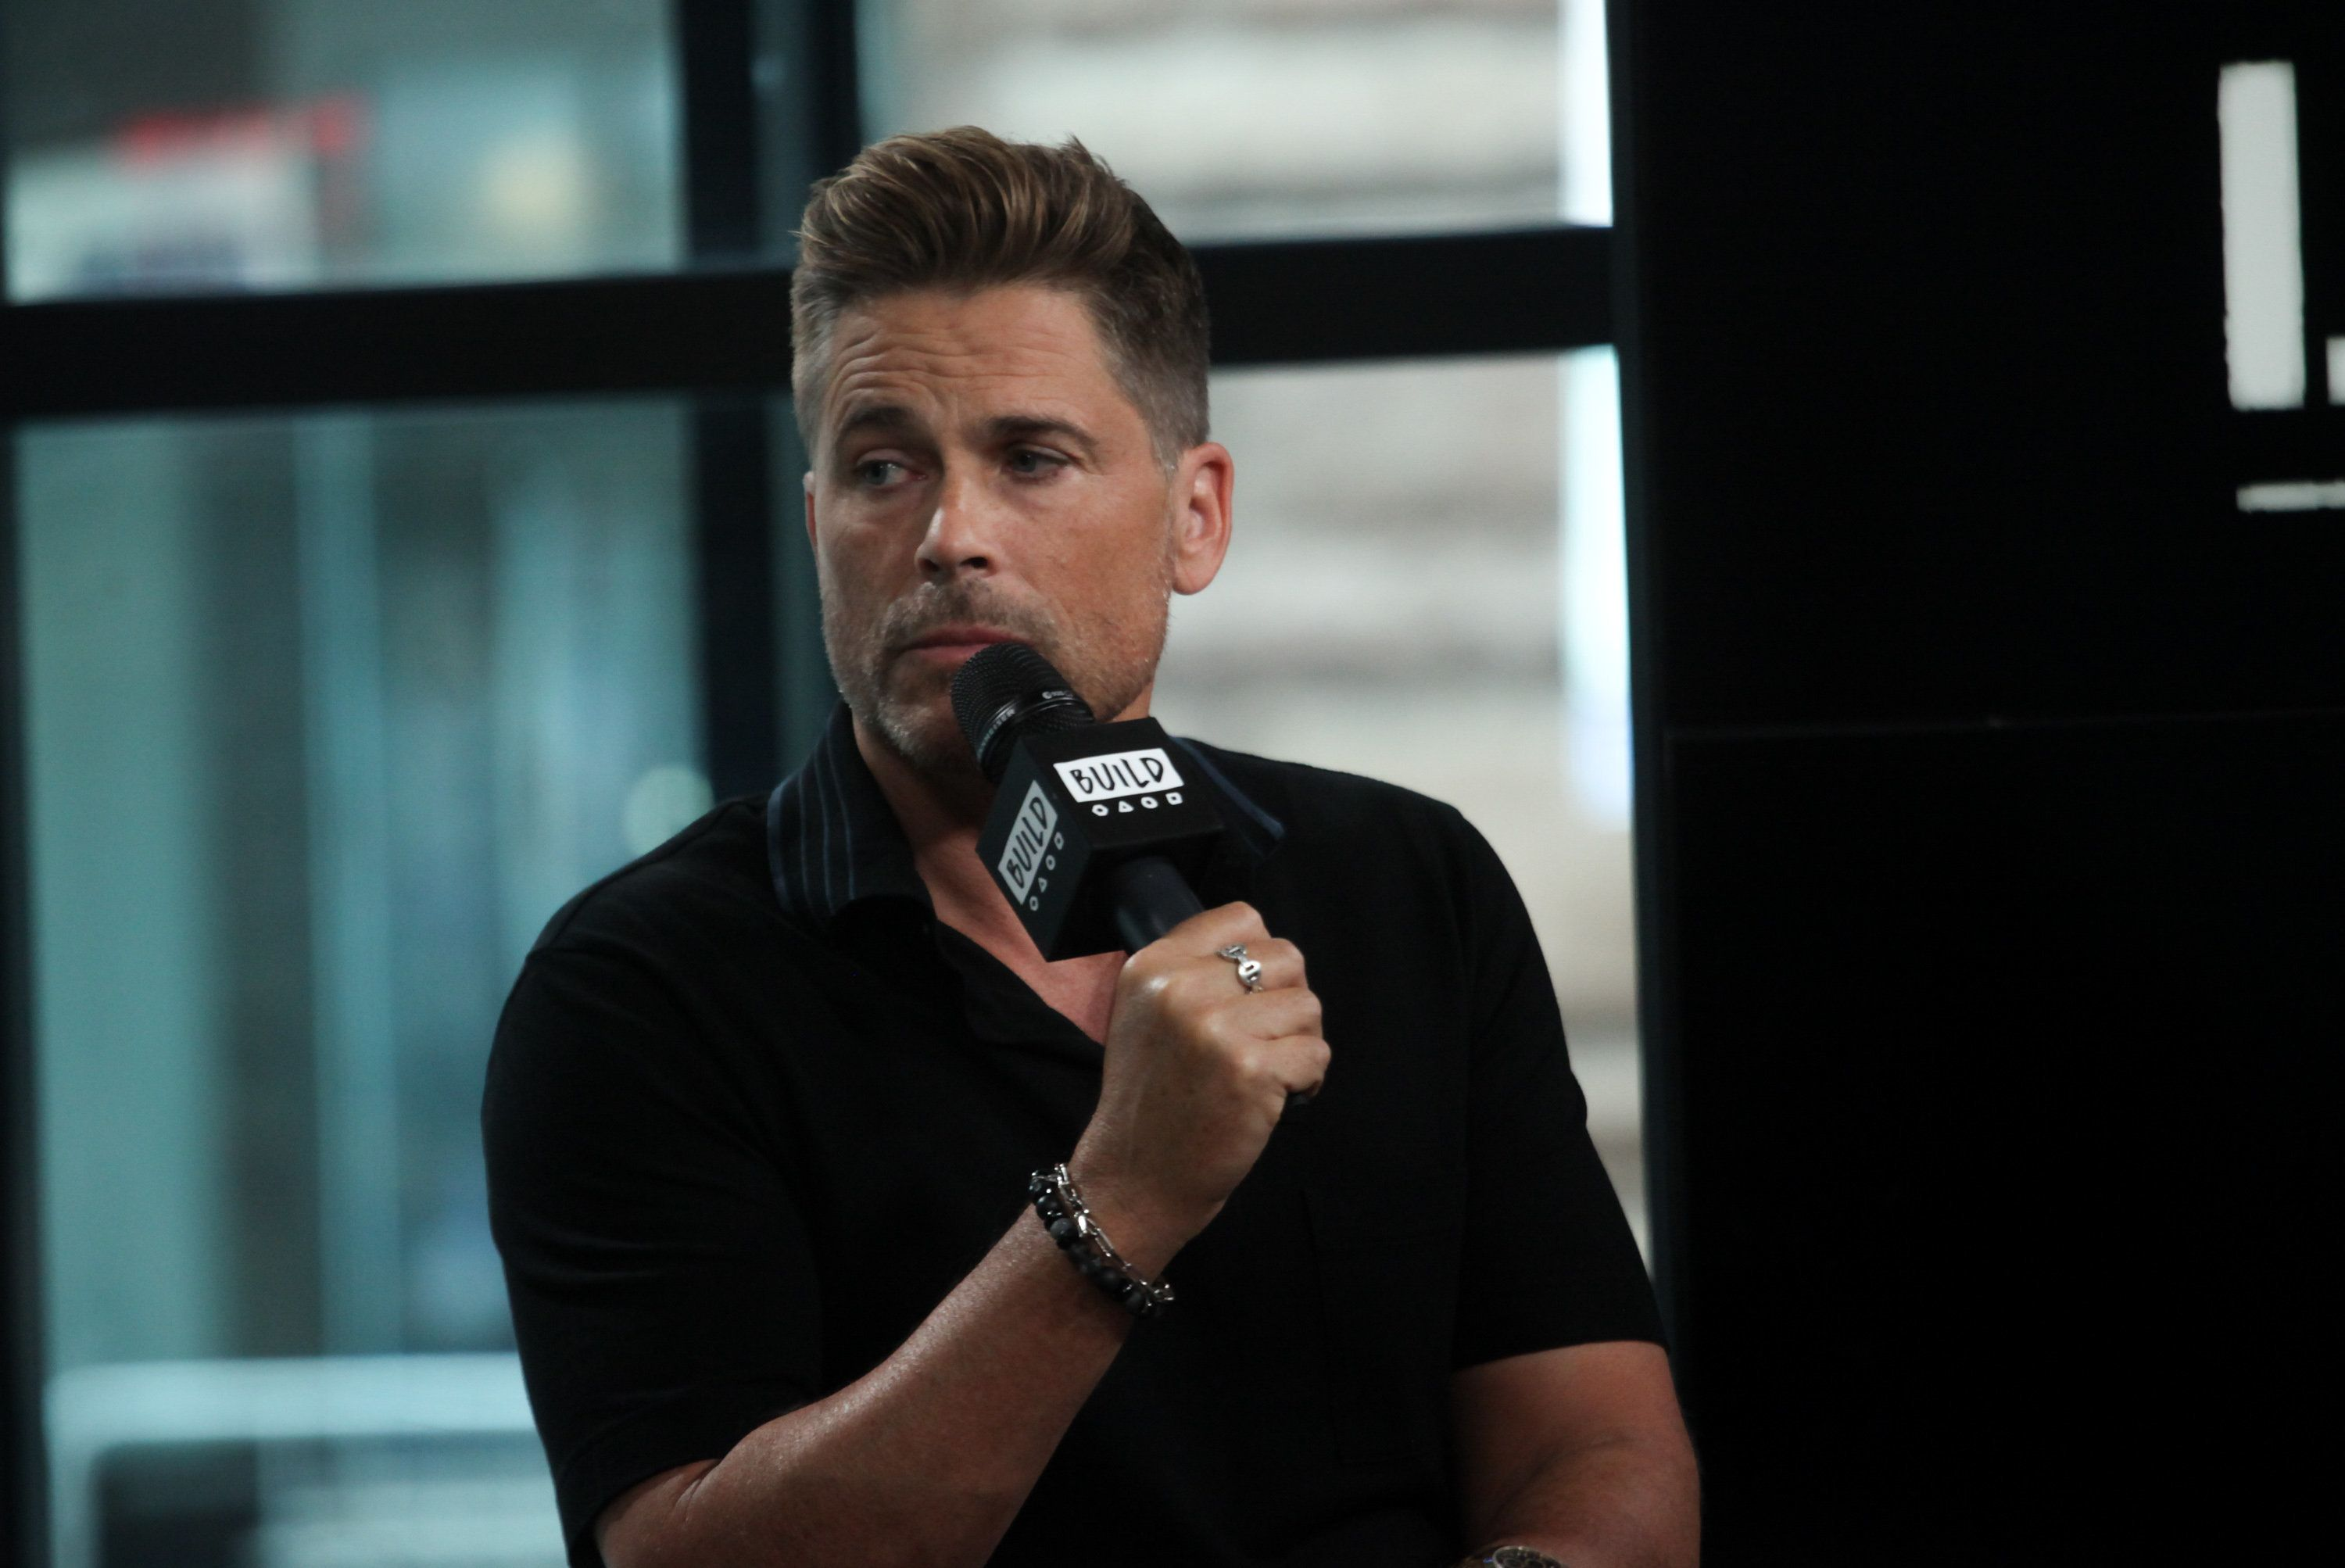 NEW YORK, NY - JULY 24:  Actor Rob Lowe attends Build Series to discuss his new show  'The Lowe Files' at Build Studio on July 24, 2017 in New York City.  (Photo by Steve Zak Photography/FilmMagic,)